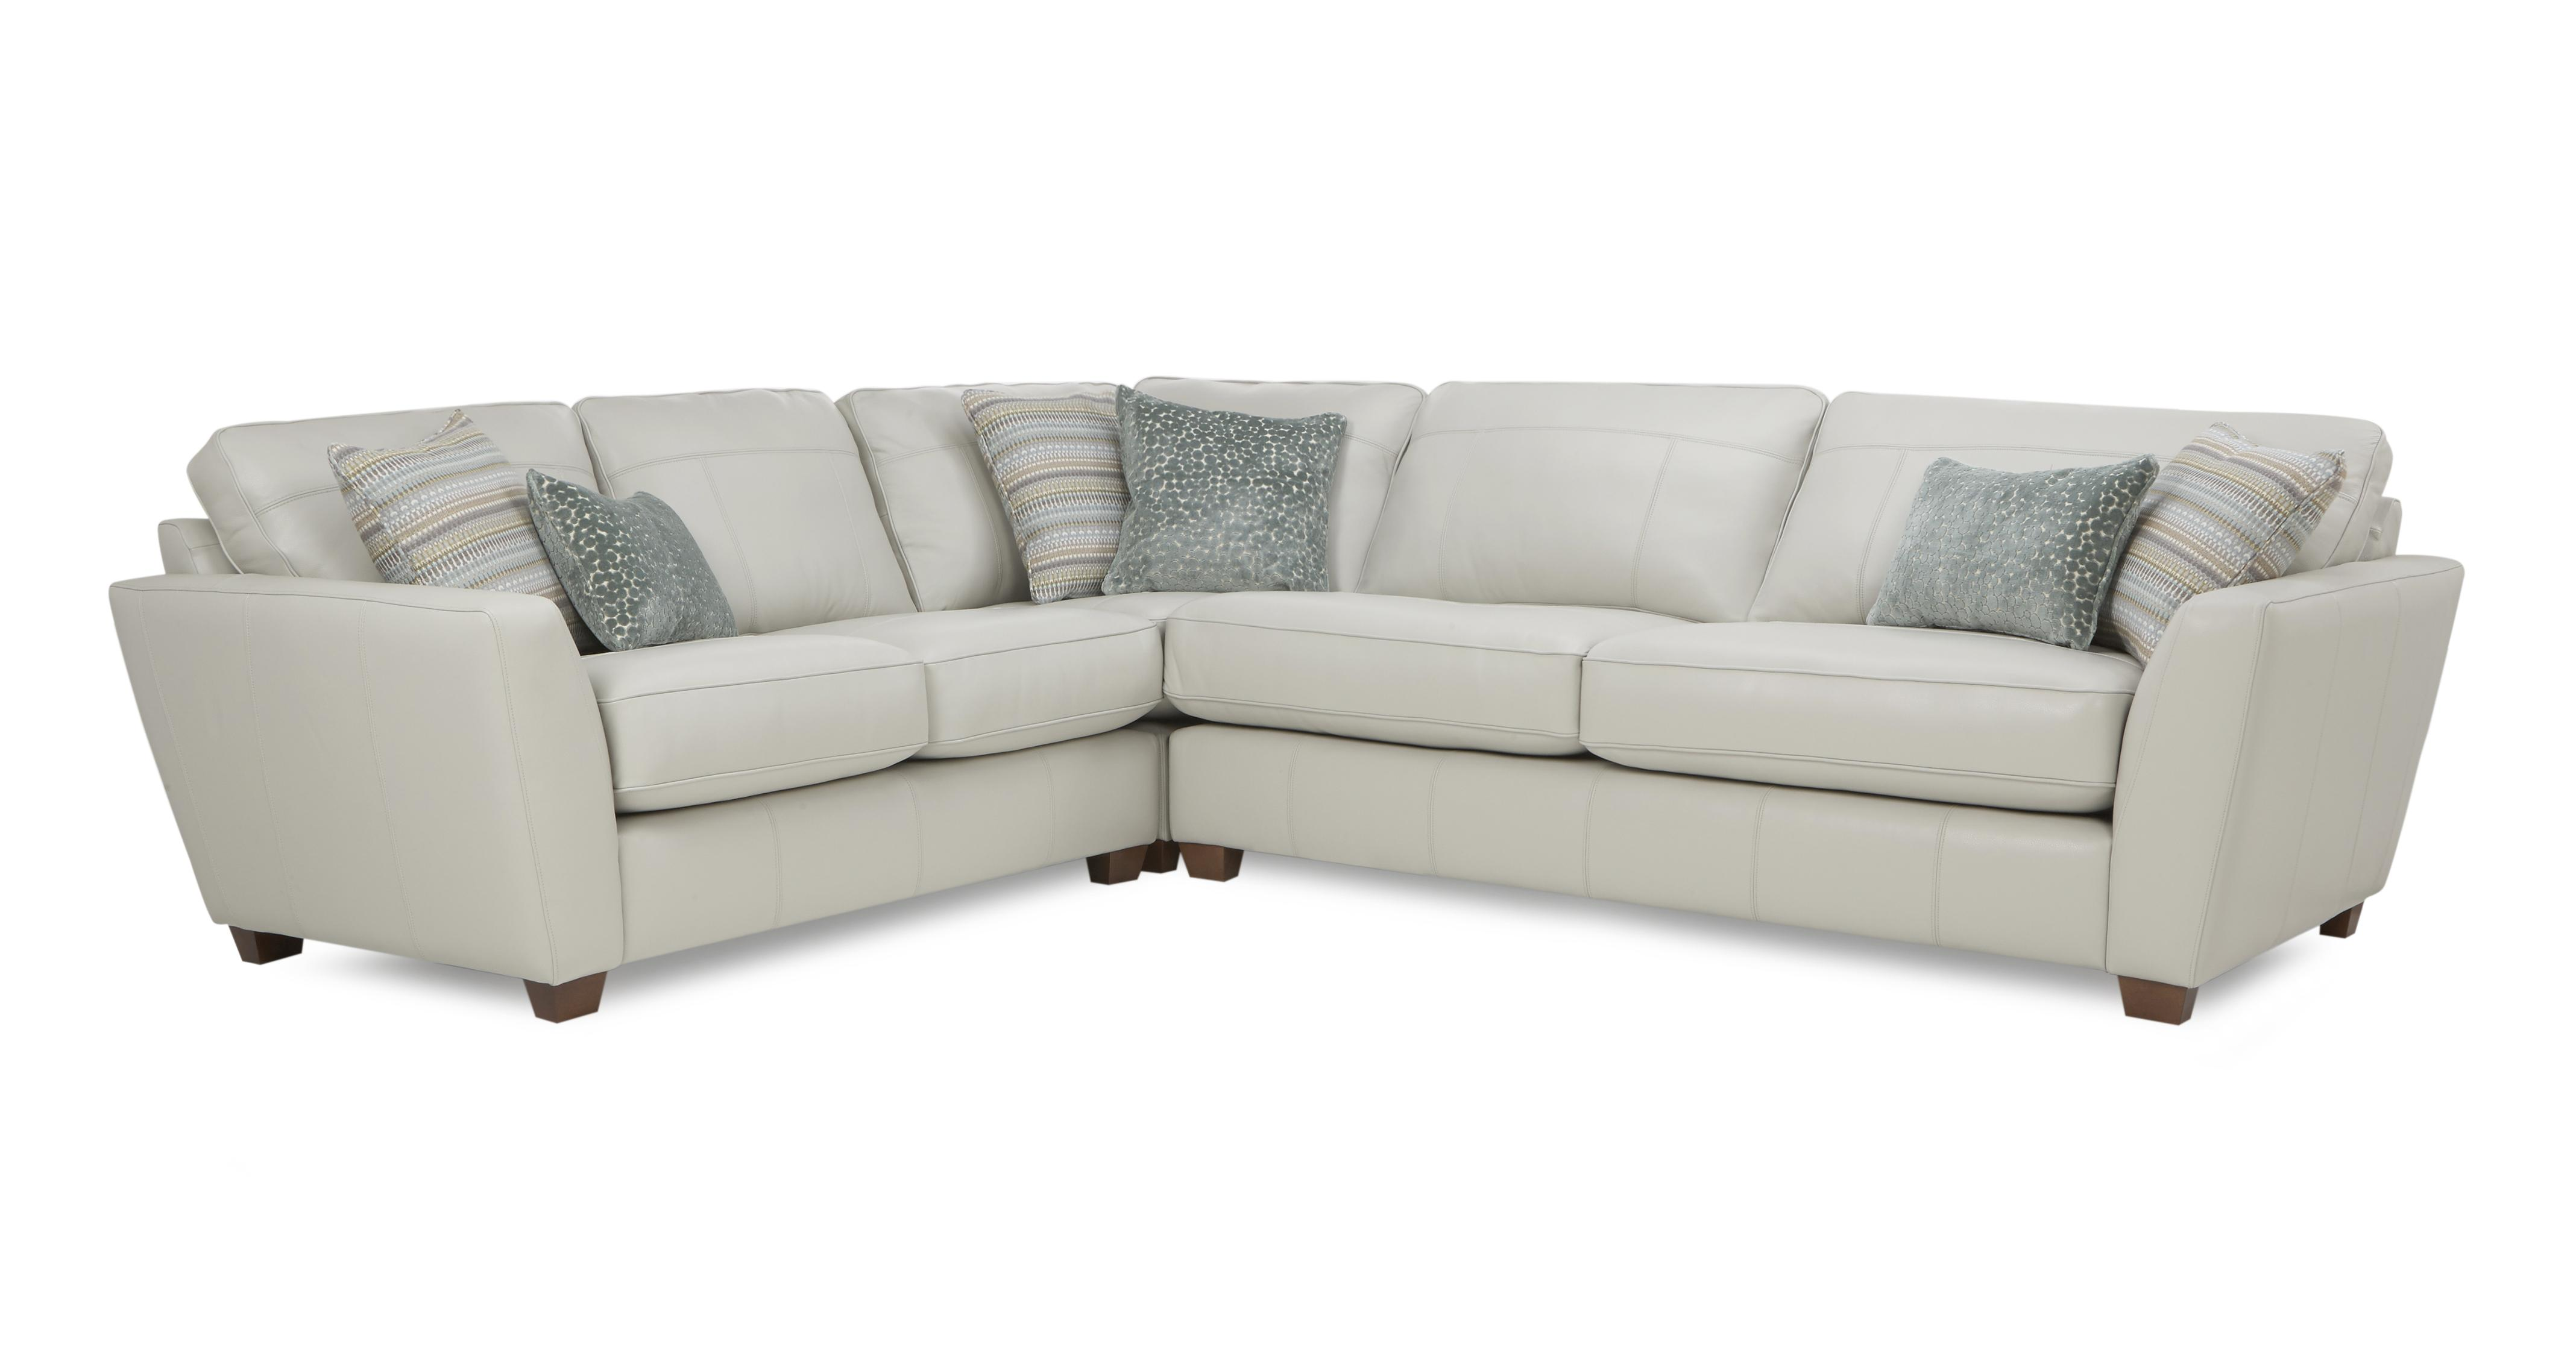 new product dc0a5 06efb Sophia Leather: Right Hand Facing 3 Seater Corner Group